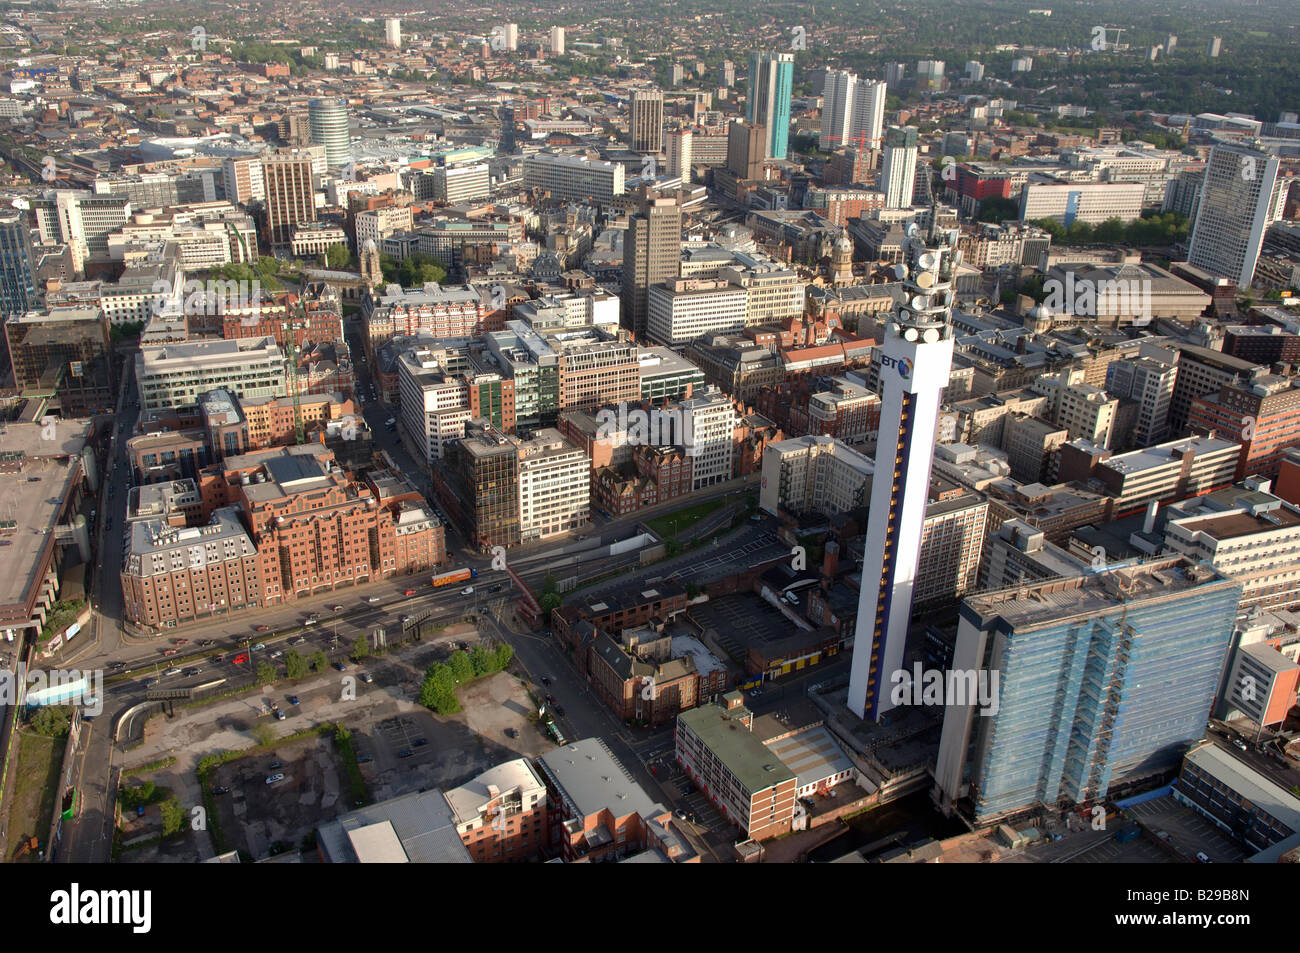 Birmingham Centre and BT Tower Date 12 03 2008 Ref ZB648 111149 0011 COMPULSORY CREDIT World Pictures Photoshot - Stock Image